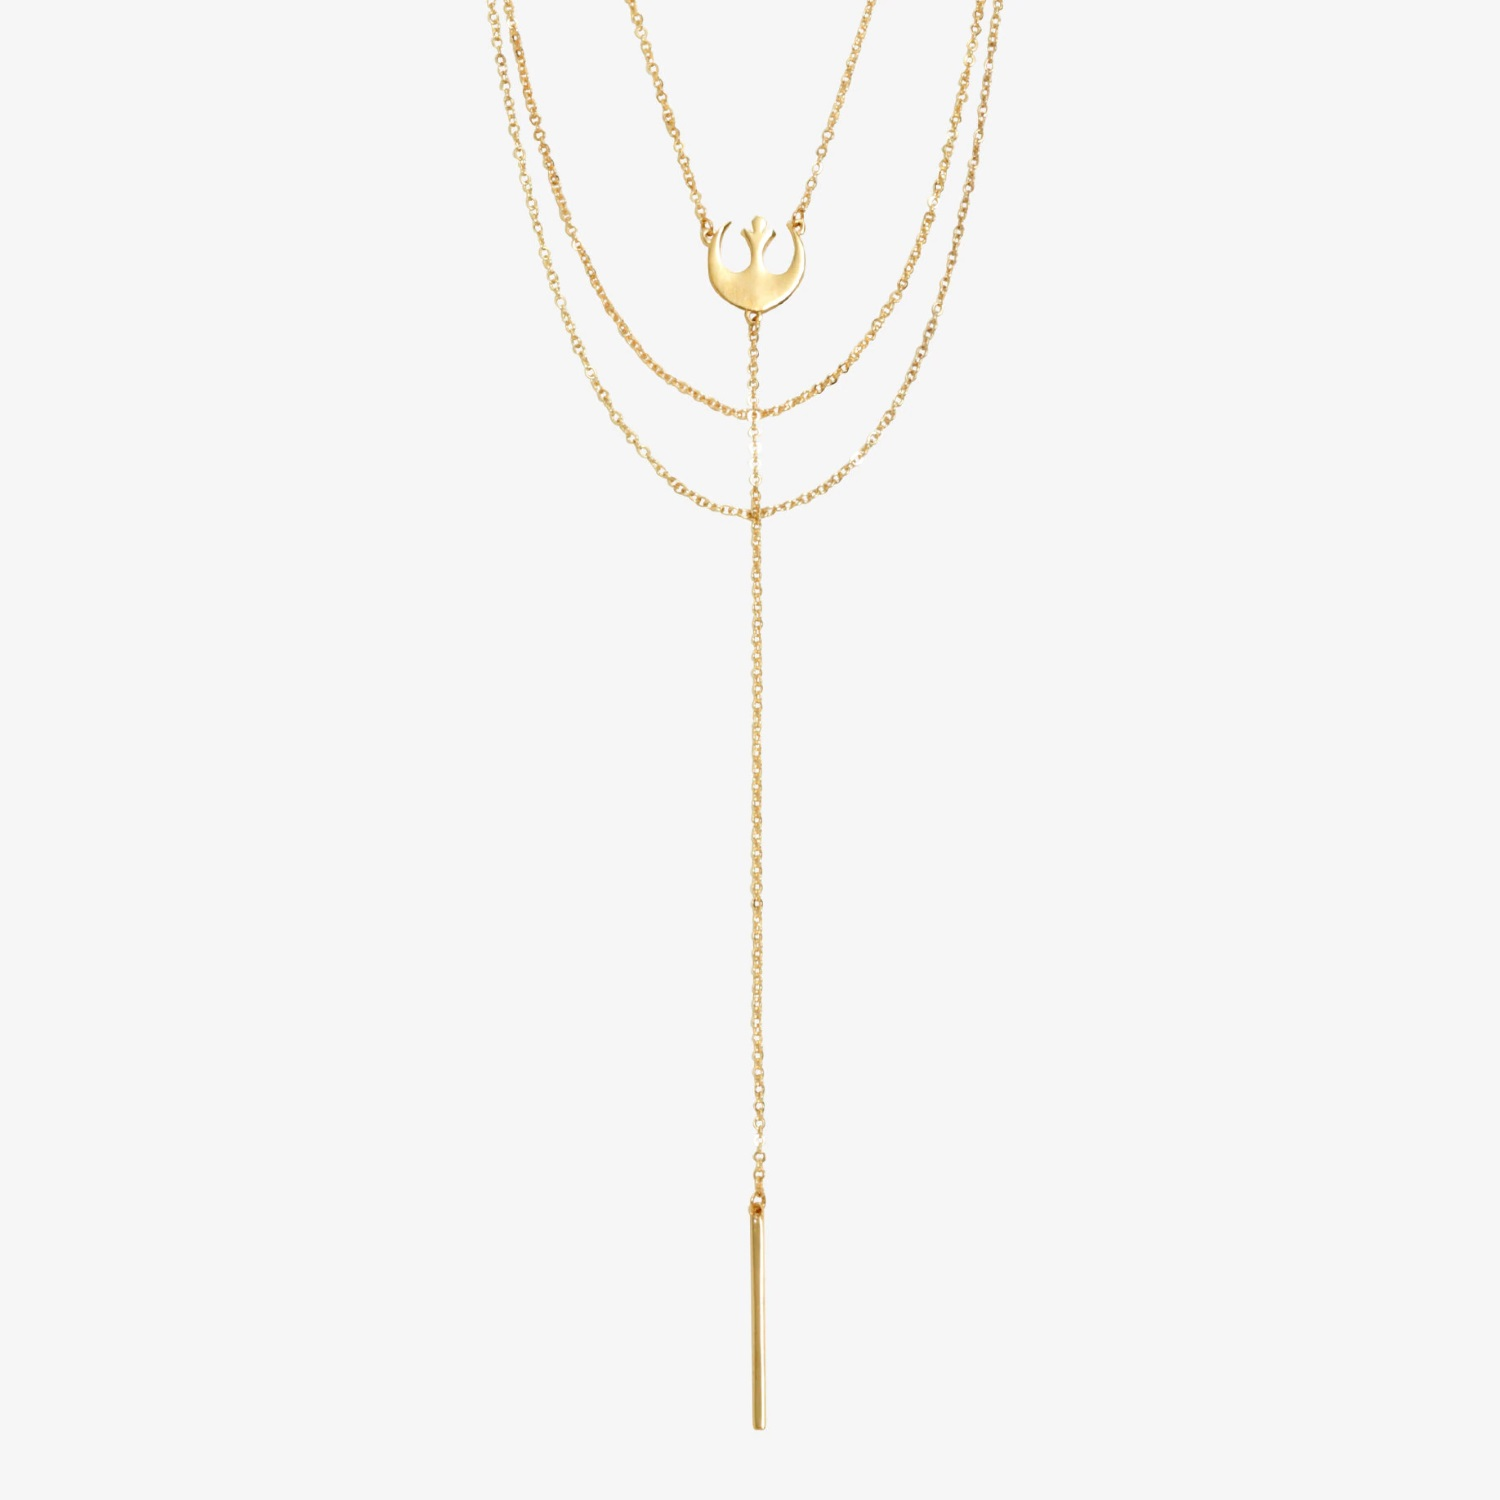 Loungefly x Star Wars Rebel Symbol Layered Necklace at Hot Topic